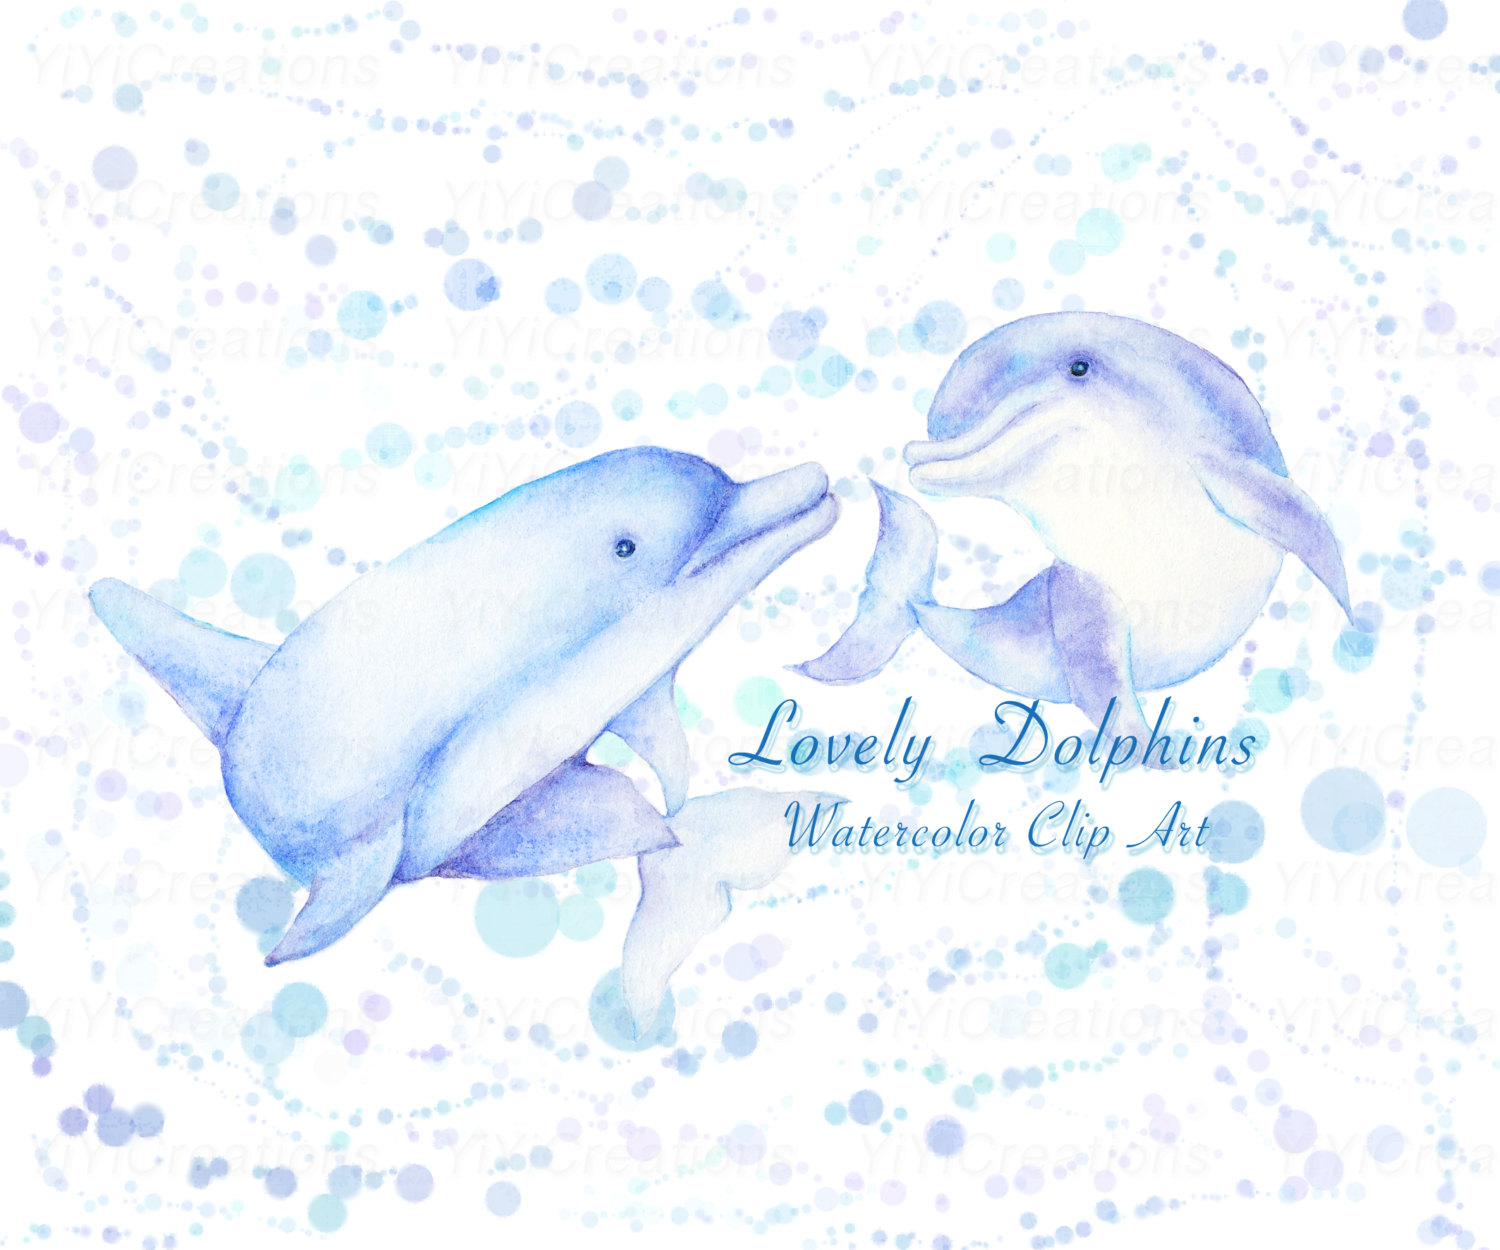 Bottlenose Dolphin clipart creature Painted Watercolor a is